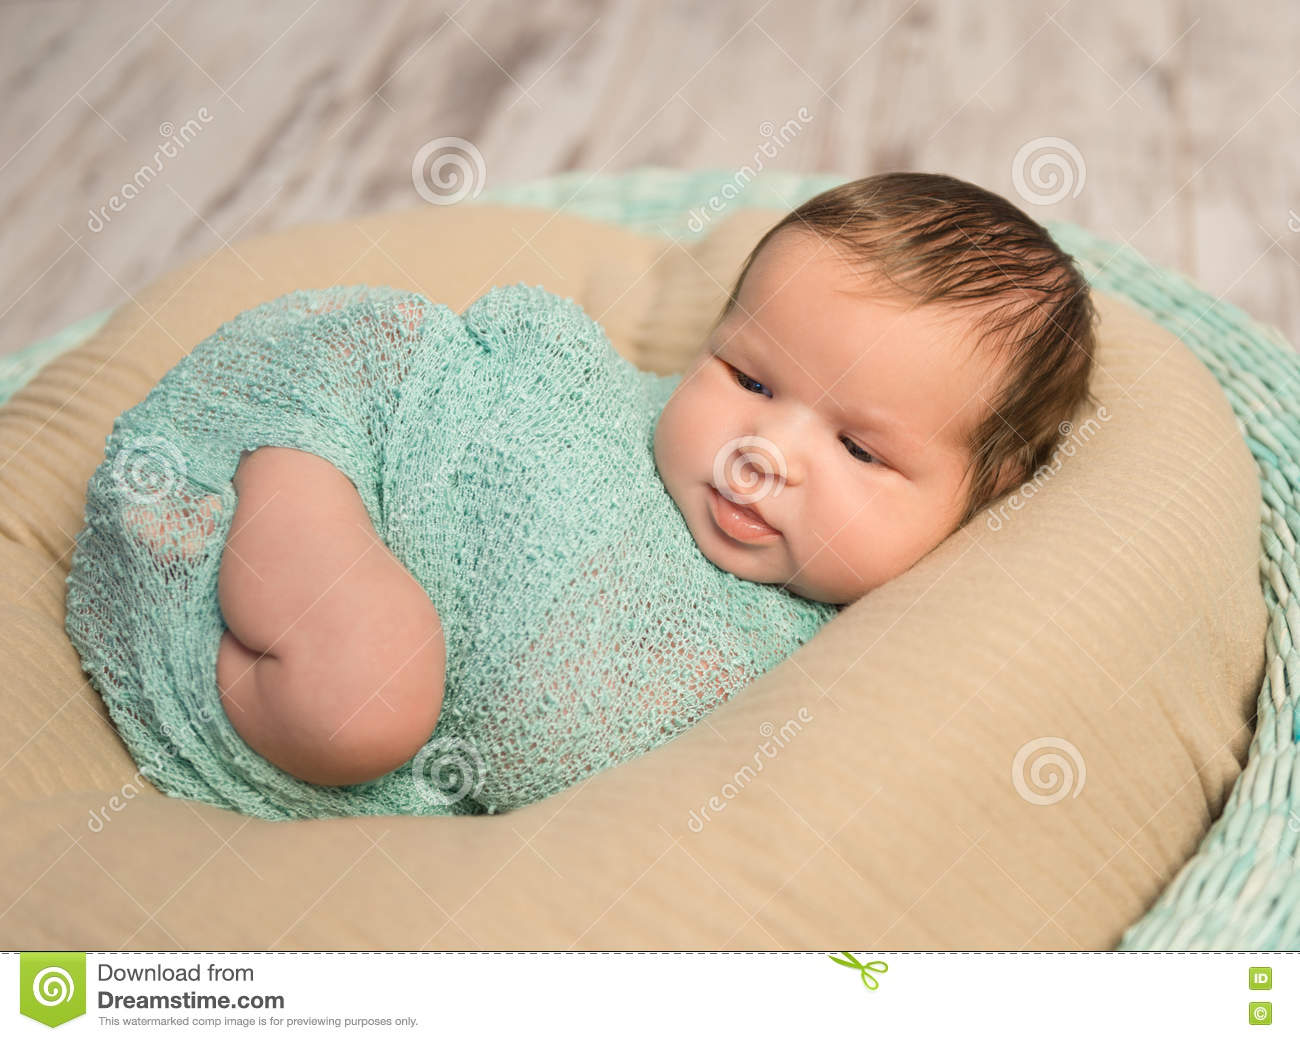 8849814d2 Wrapped Newborn With Bare Foot Stock Image - Image of human ...